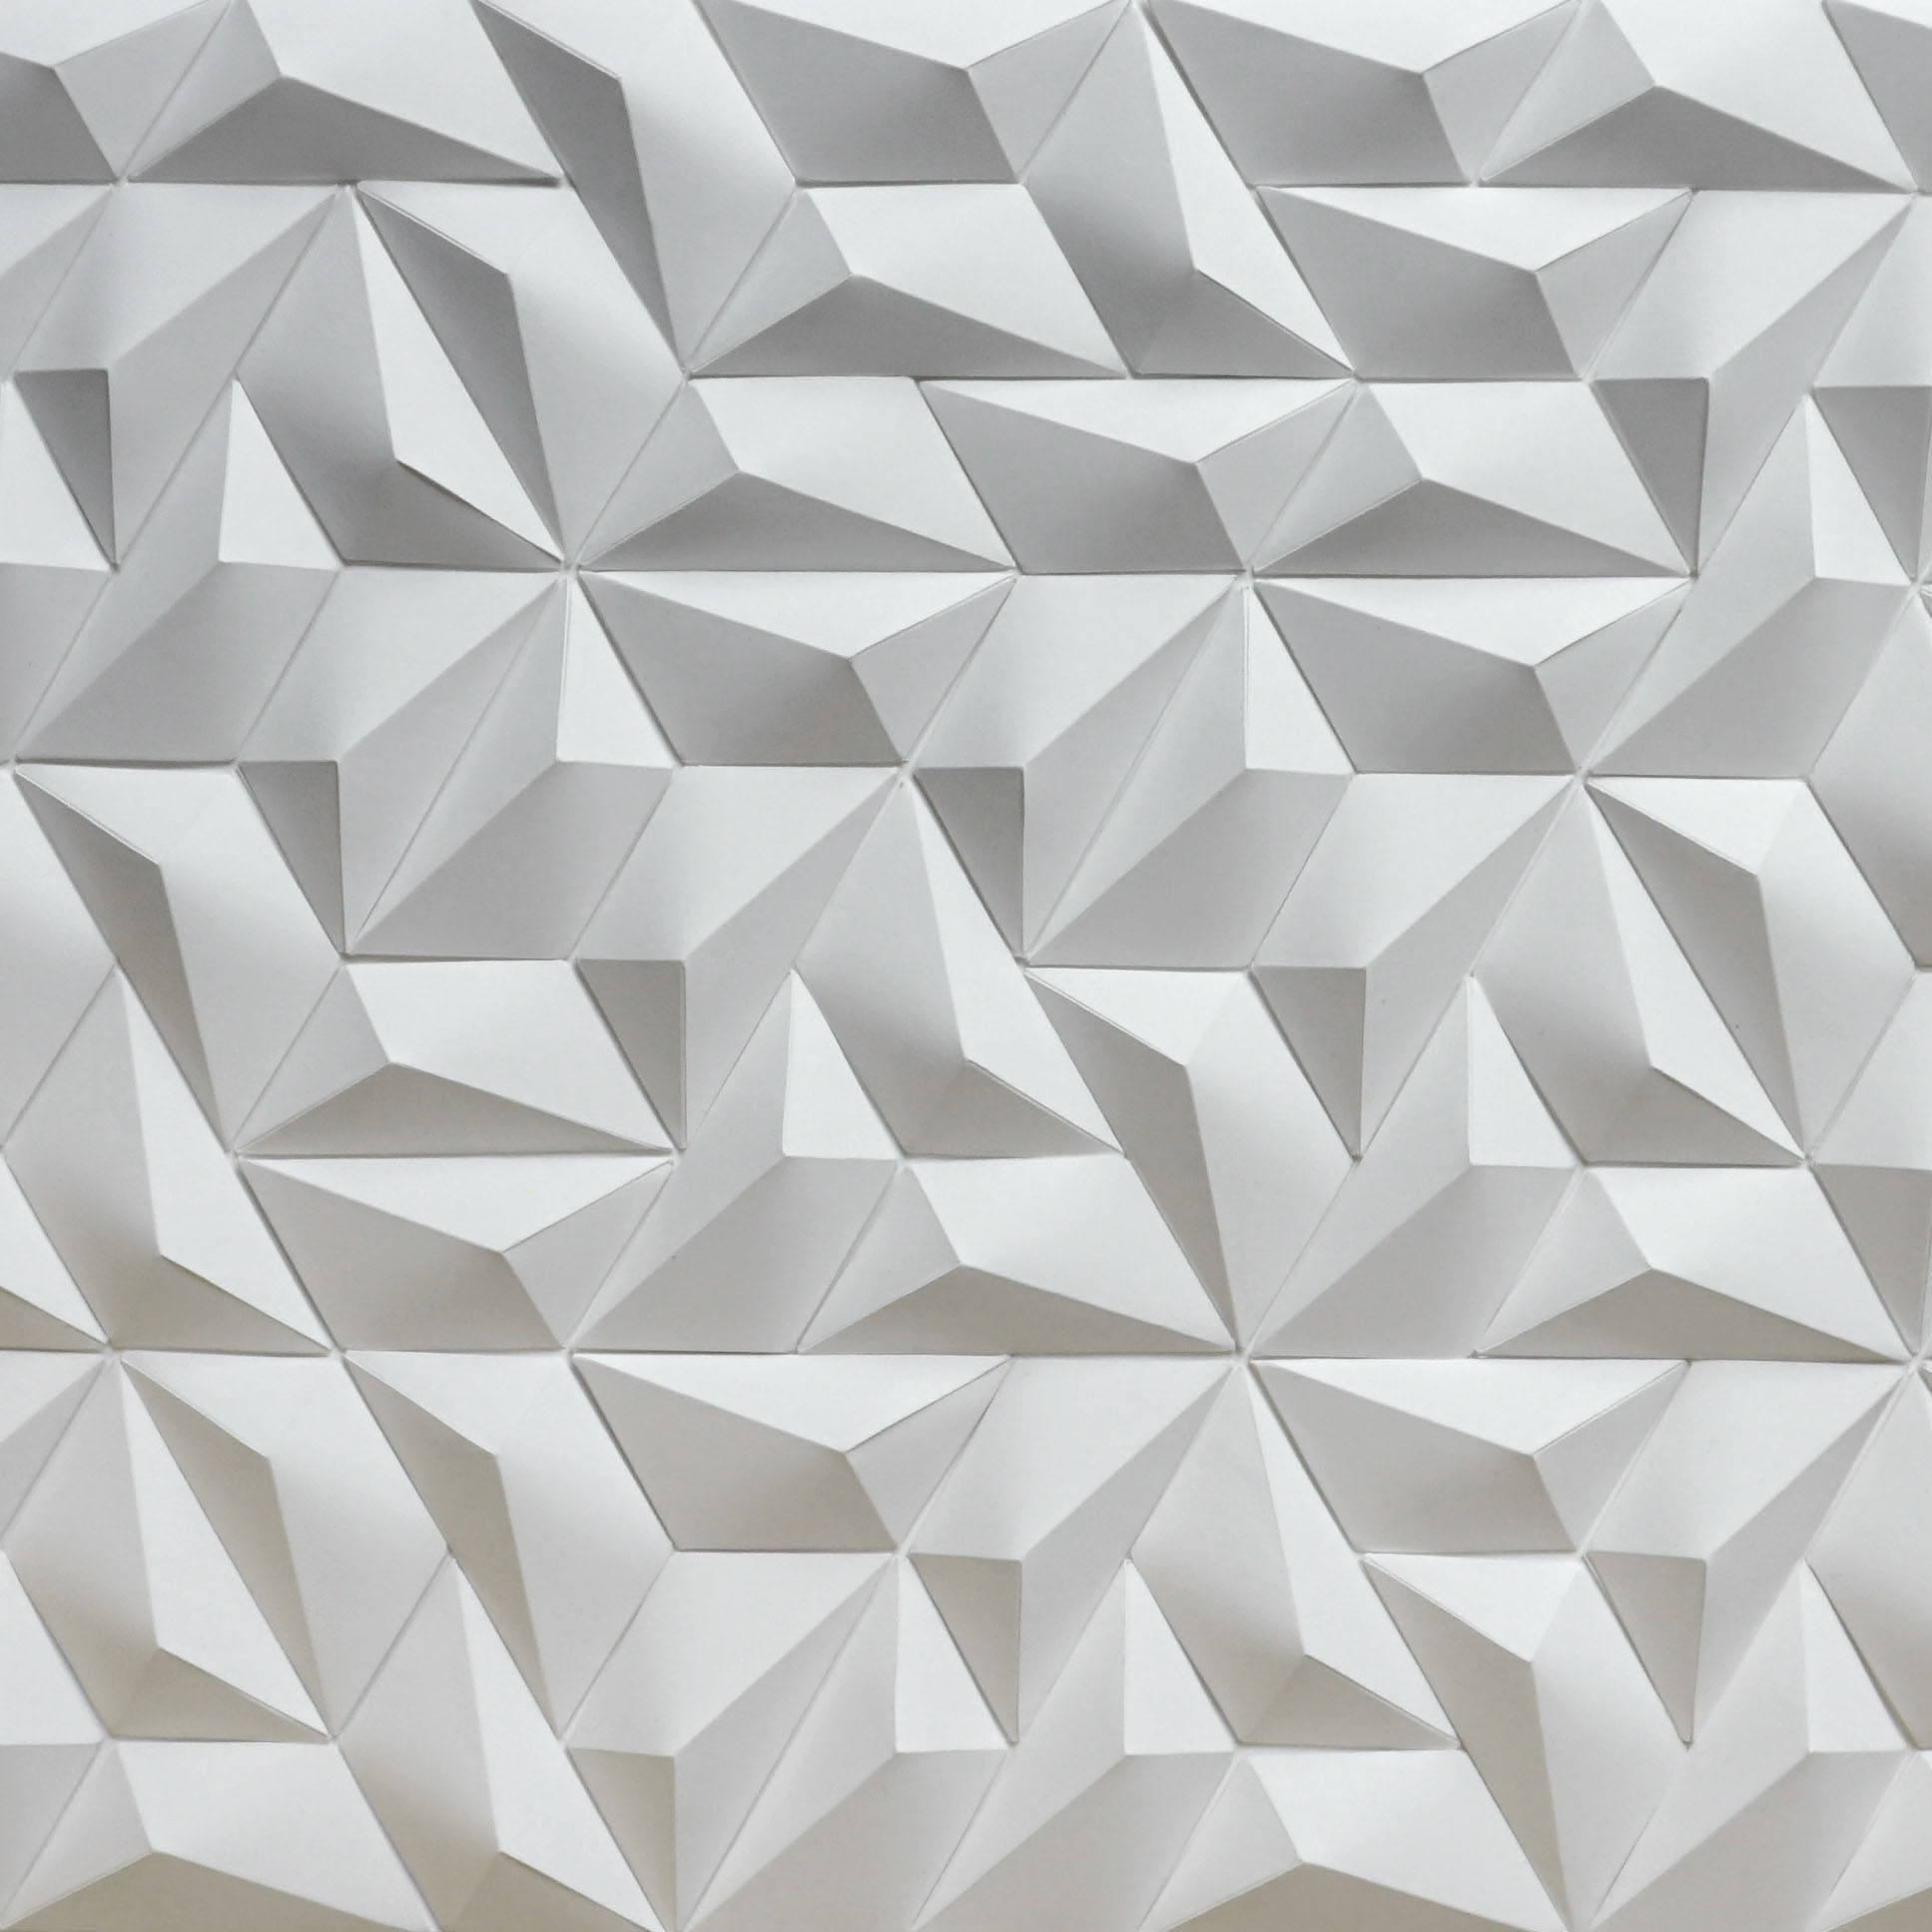 Adaptive Origami Structures and Their Mechanical Properties